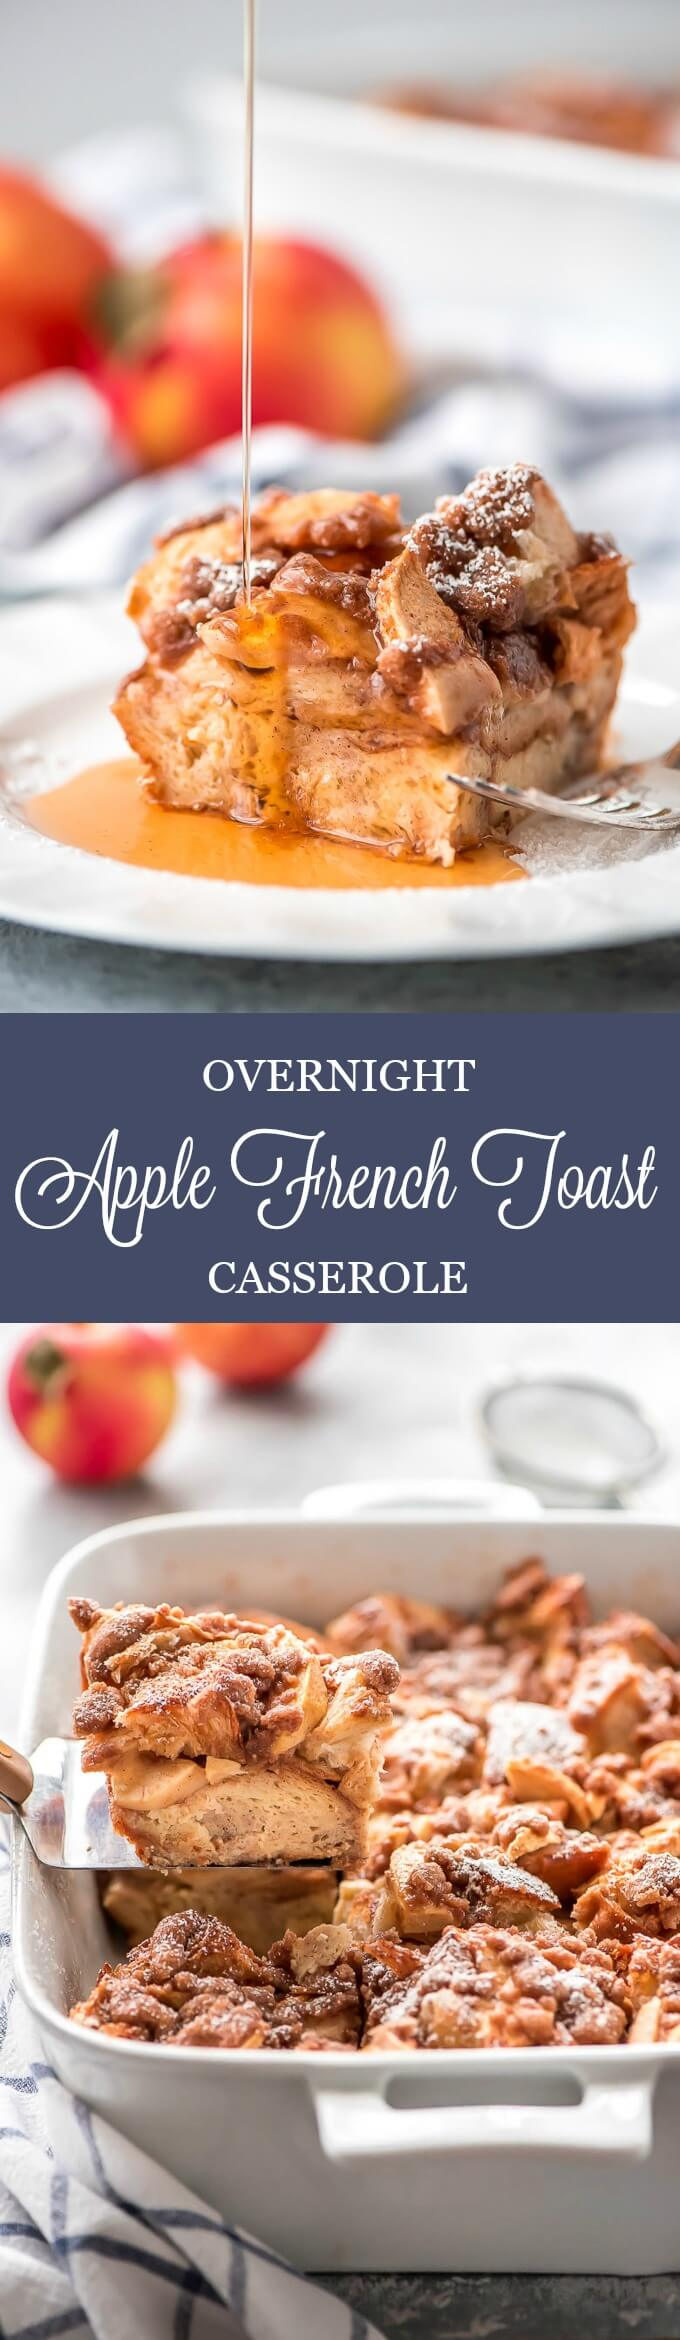 There's nothing better than waking up to a delicious warm breakfast that requires minimal effort like this Overnight Apple French Toast Casserole.